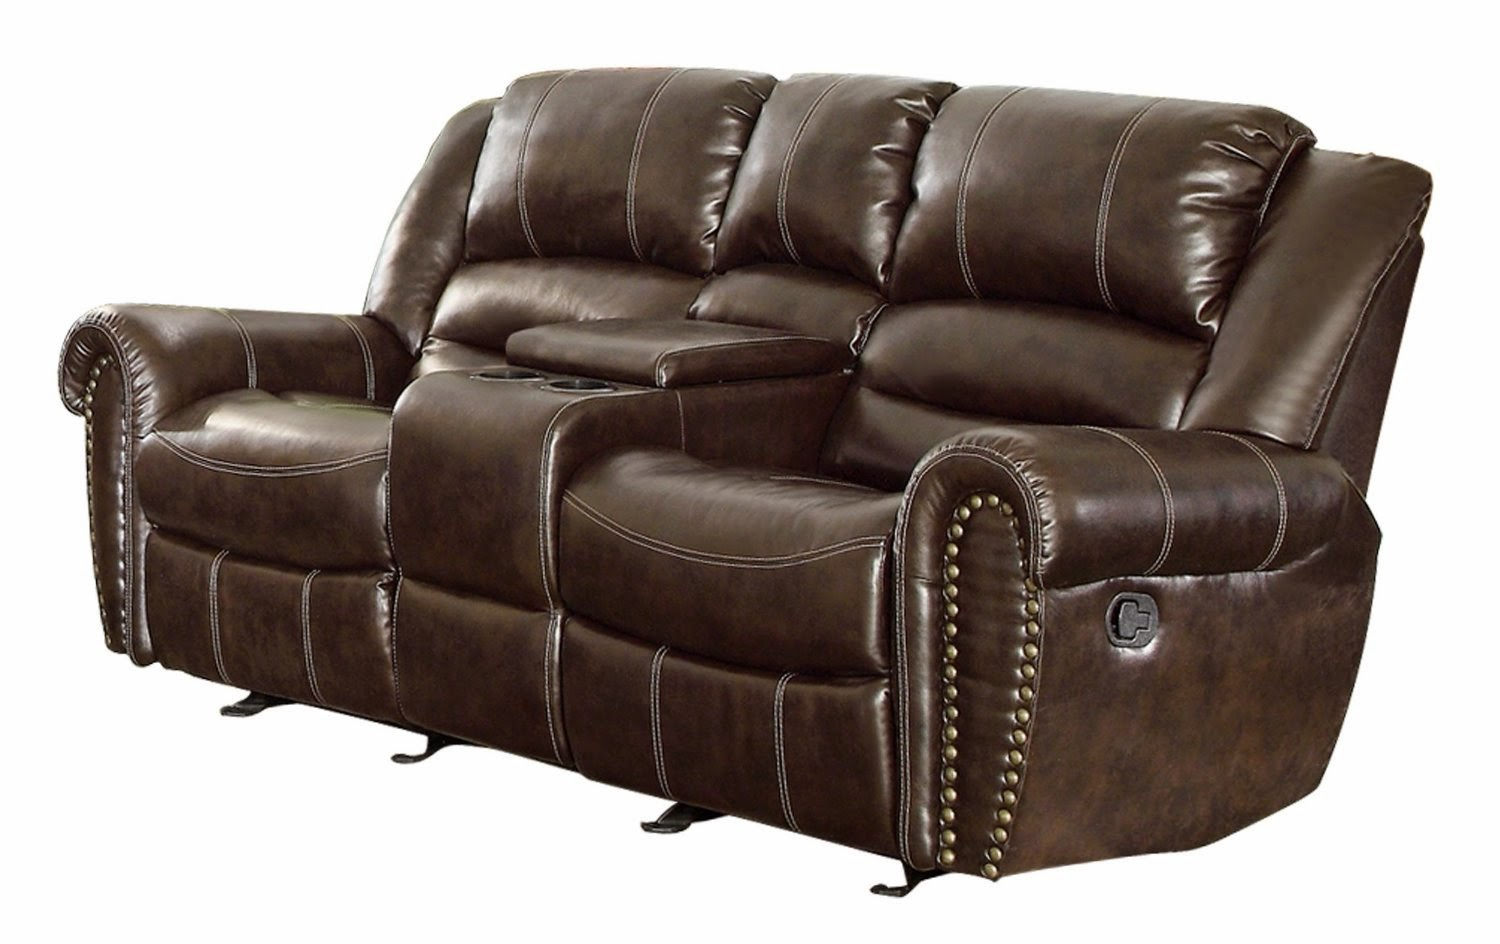 Two Seater Sofa Recliner Best Stain Remover For Fabric Where Is The Place To Buy 2